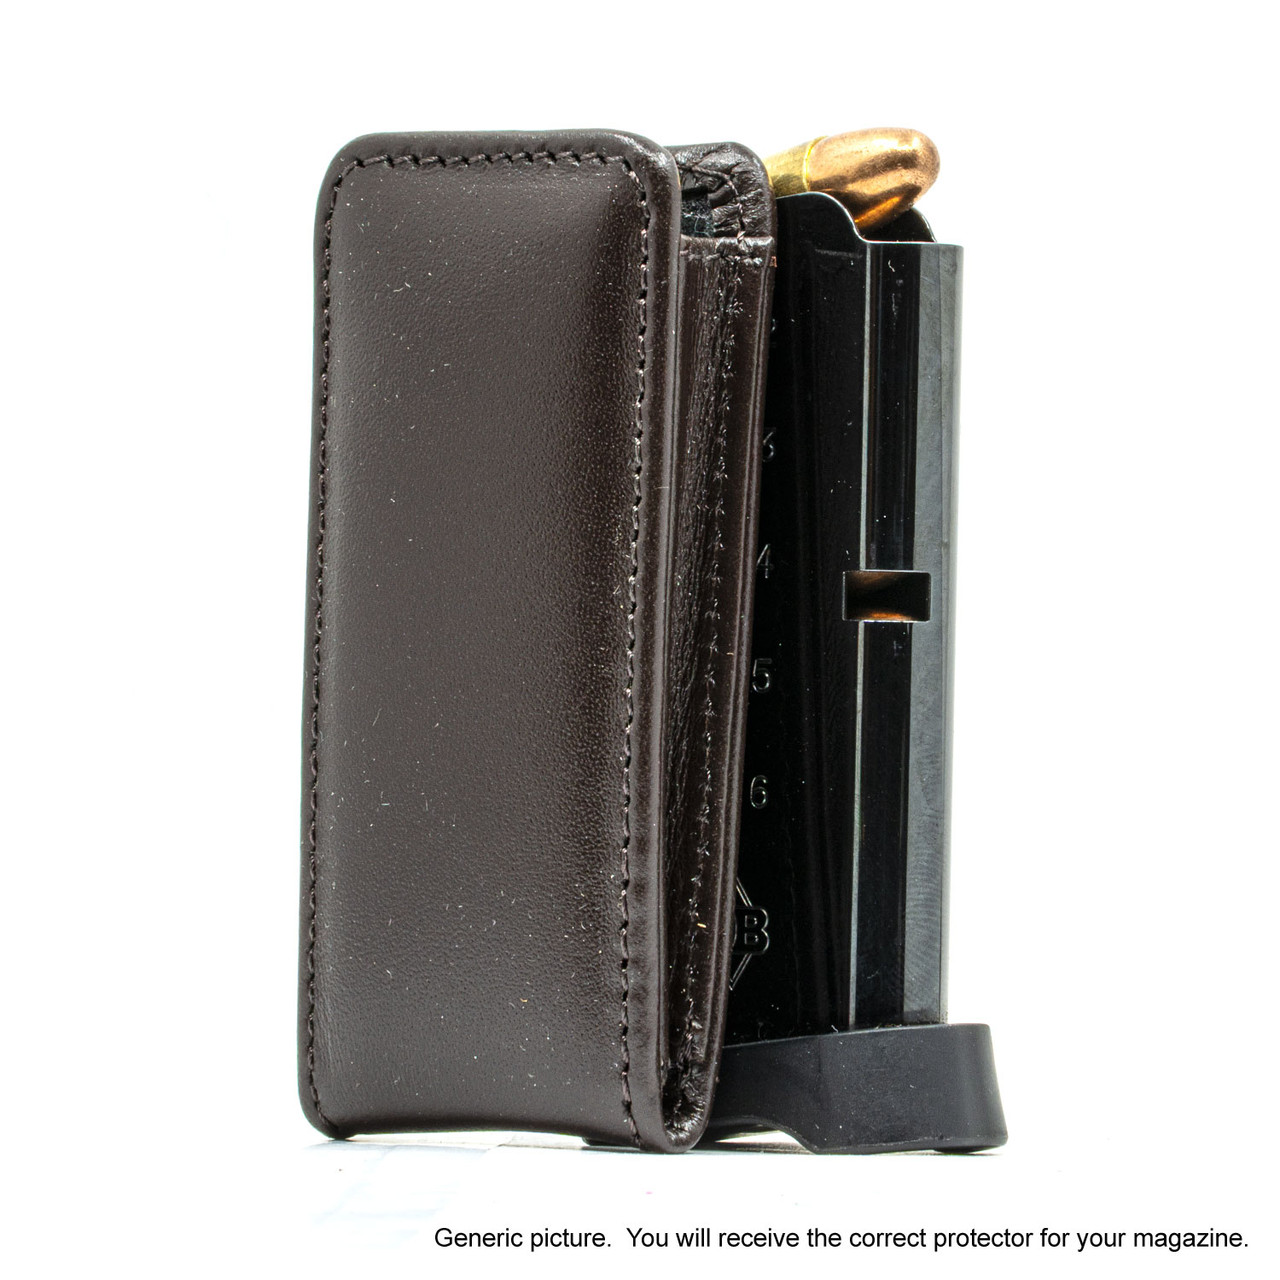 Sig P365 Brown Leather Magazine Pocket Protector